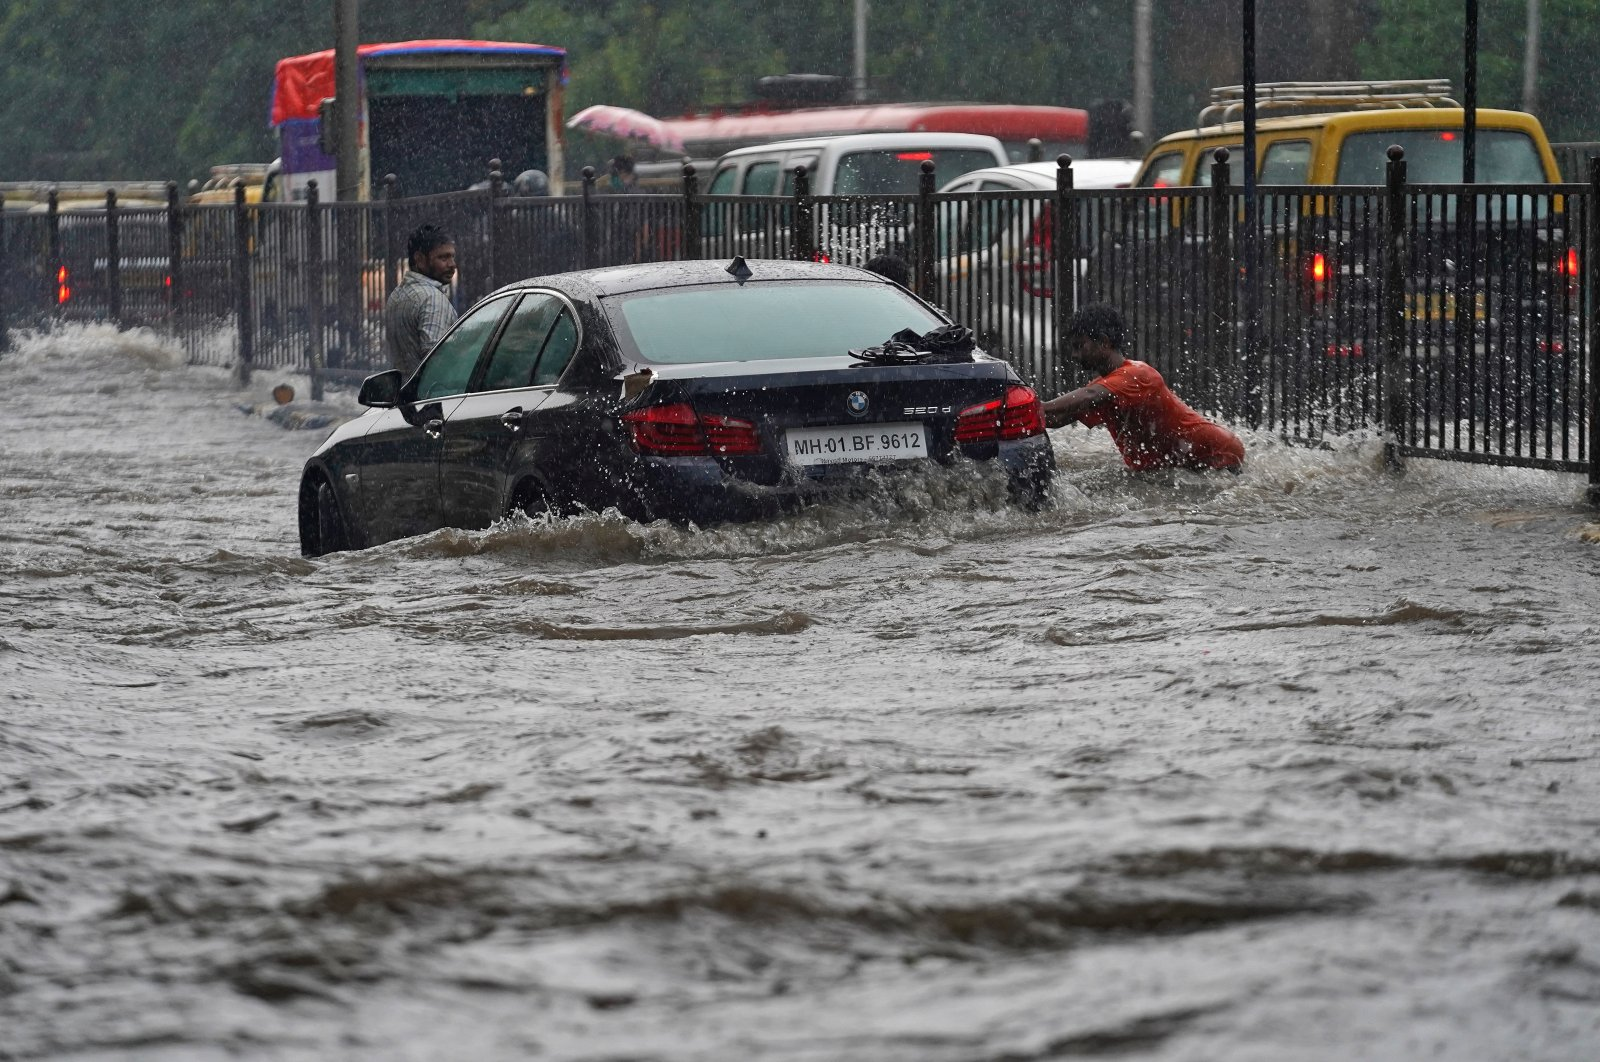 A man pushes a car, stuck in a flooded road, during heavy rains in Mumbai, India, July 4, 2020. (Reuters Photo)